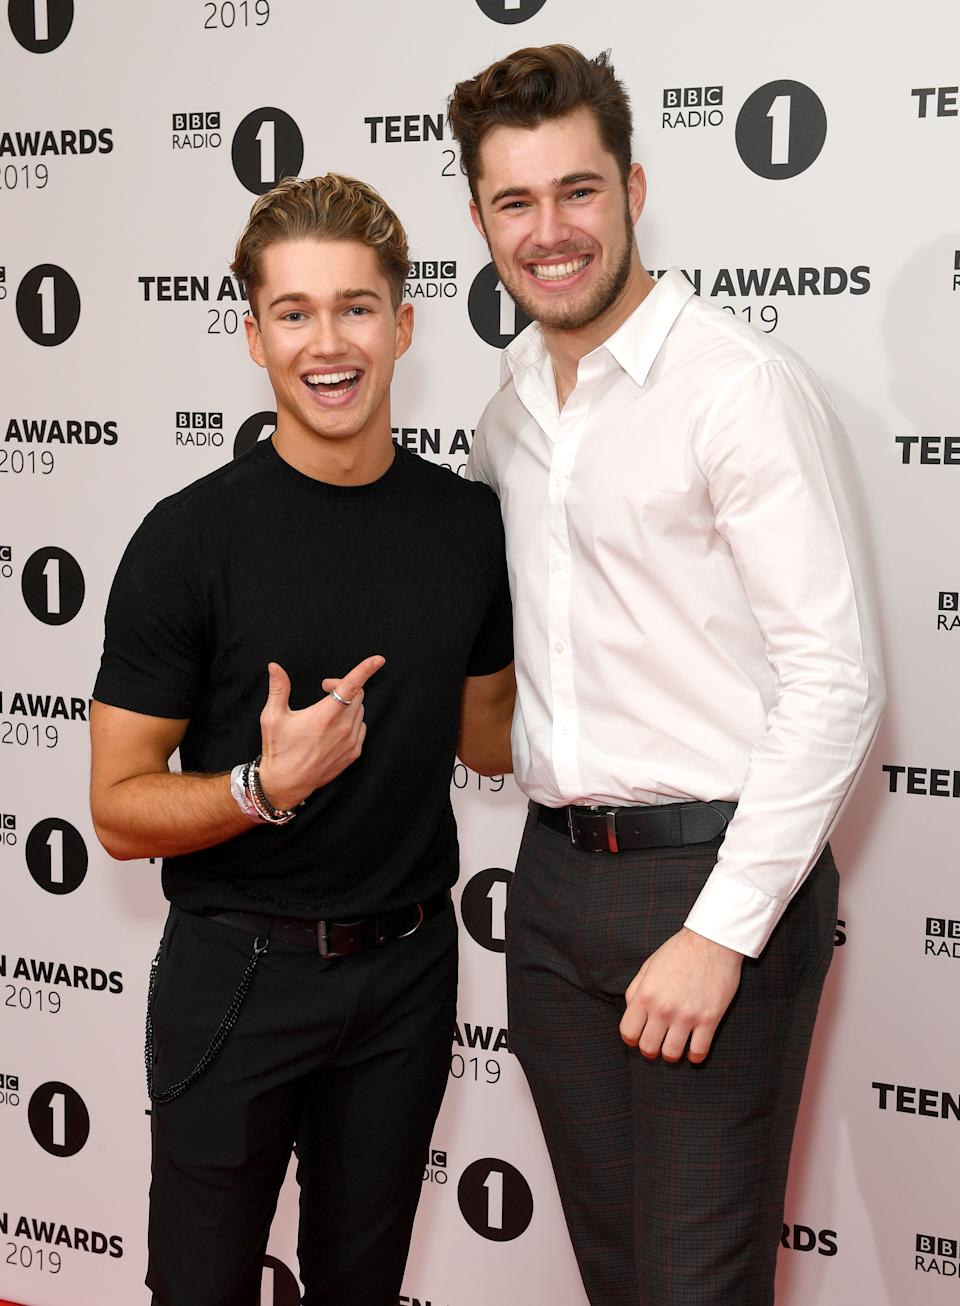 """File photo dated 24/11/19 of brothers AJ Pritchard (left) and Curtis Pritchard. Curtis has said he wants his brother AJ to do """"as many trials as humanly possible"""" while he is in the I'm A Celebri...Get Me Out Of Here! castle and hopes to see him """"cry, scream, maybe throw up""""."""